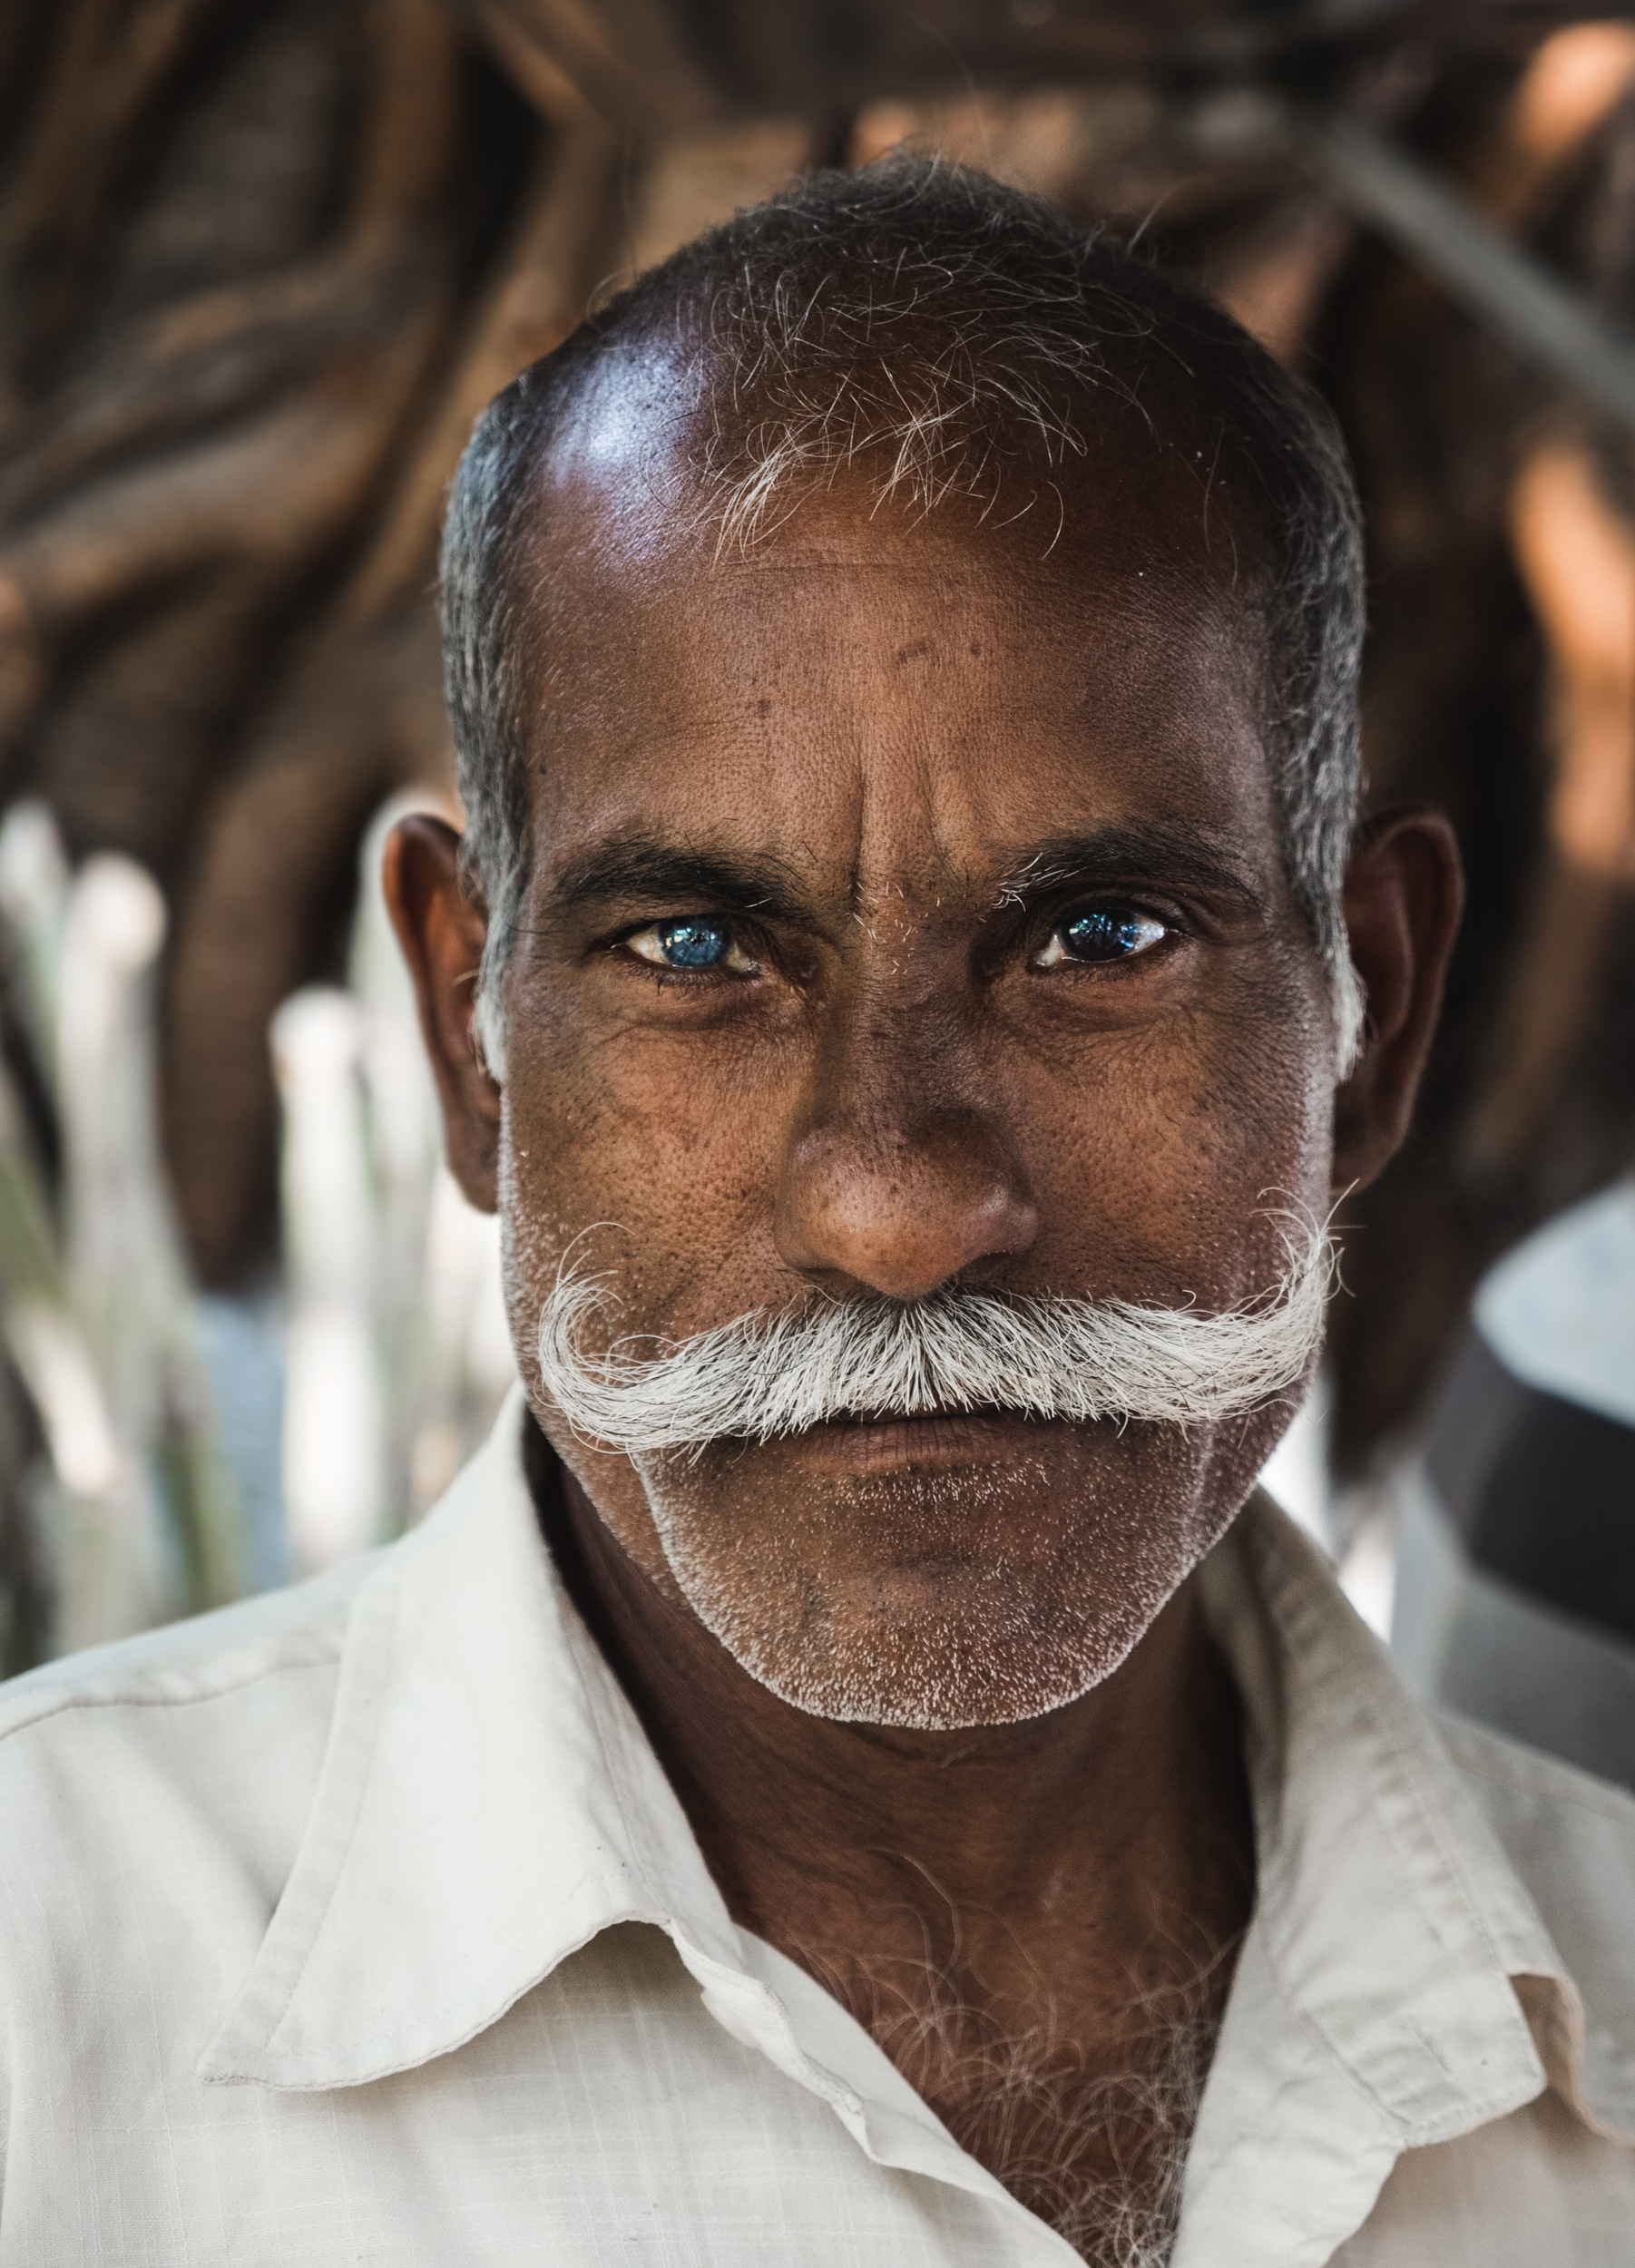 _23 Man with mustache different coloured eyes Mumbai India.jpg